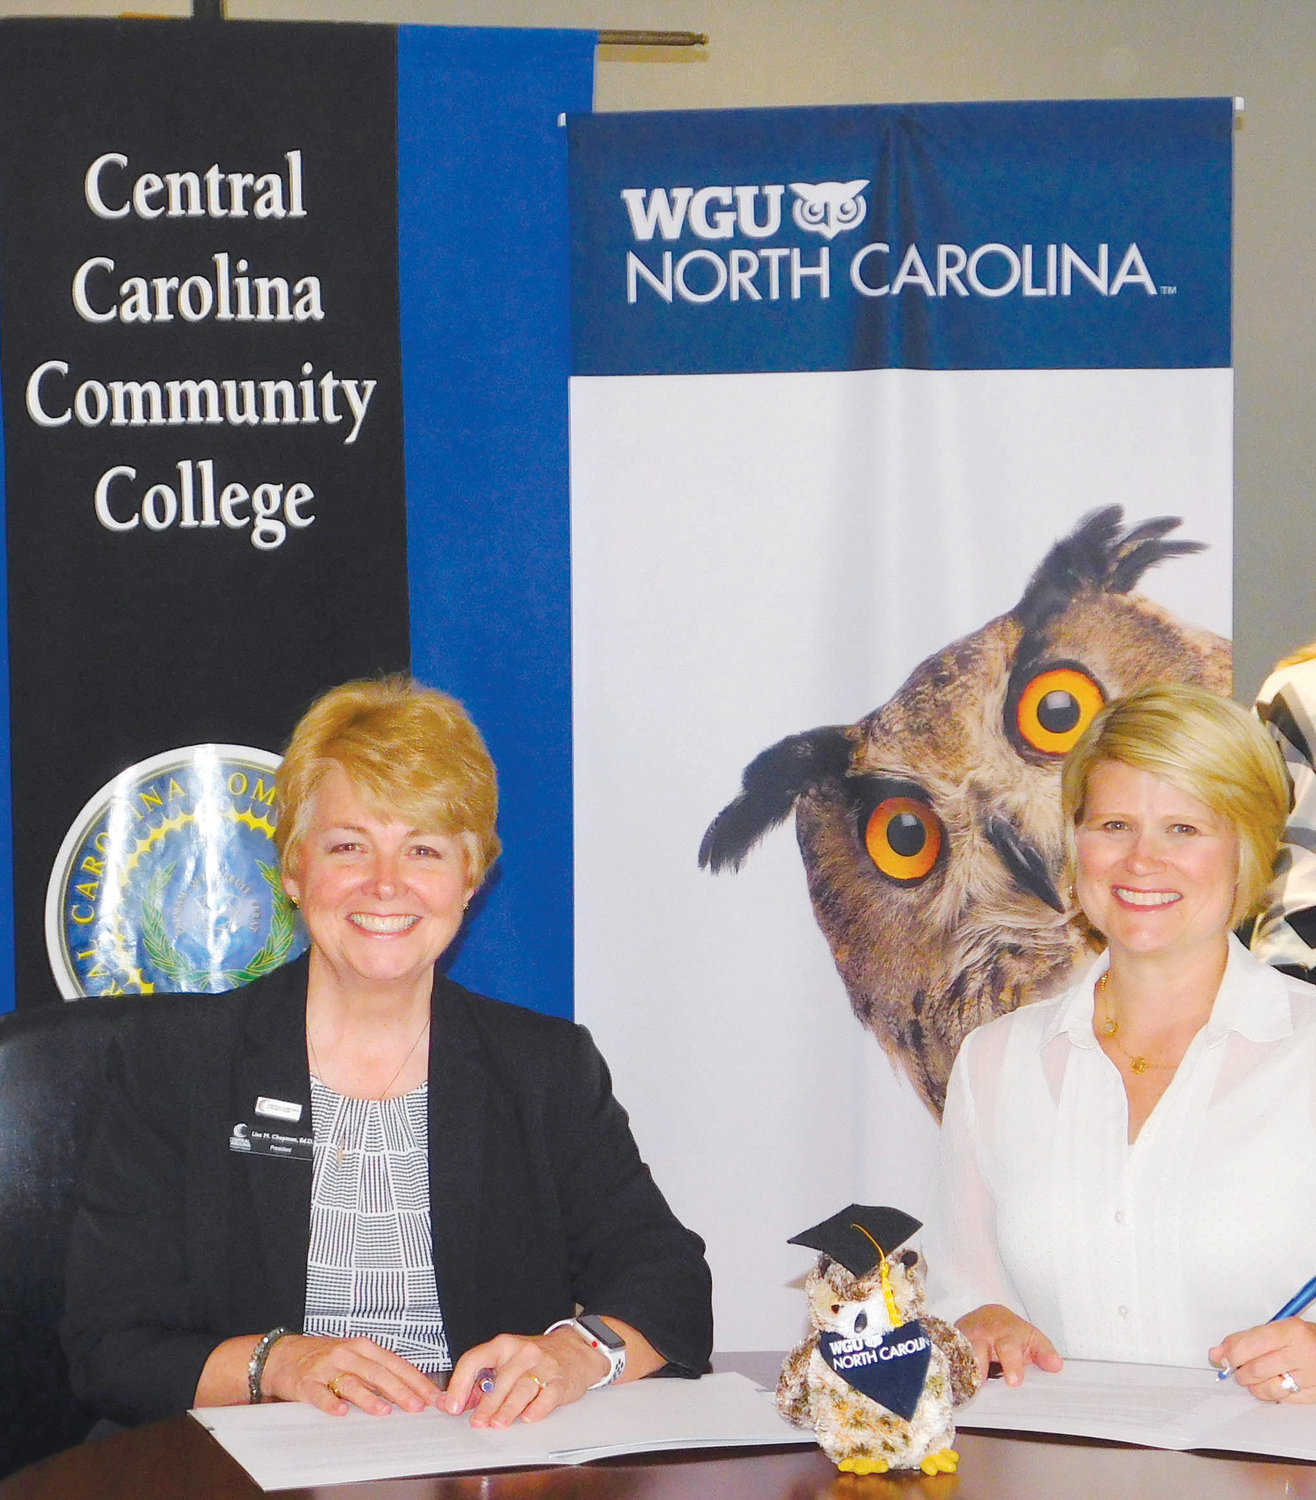 Central Carolina Community College President Dr. Lisa M. Chapman, left, and WGU North Carolina Chancellor Catherine Truitt  sign a Memorandum of Understanding that will ease the transition for CCCC graduates to pursue bachelor's degrees offered by WGU.